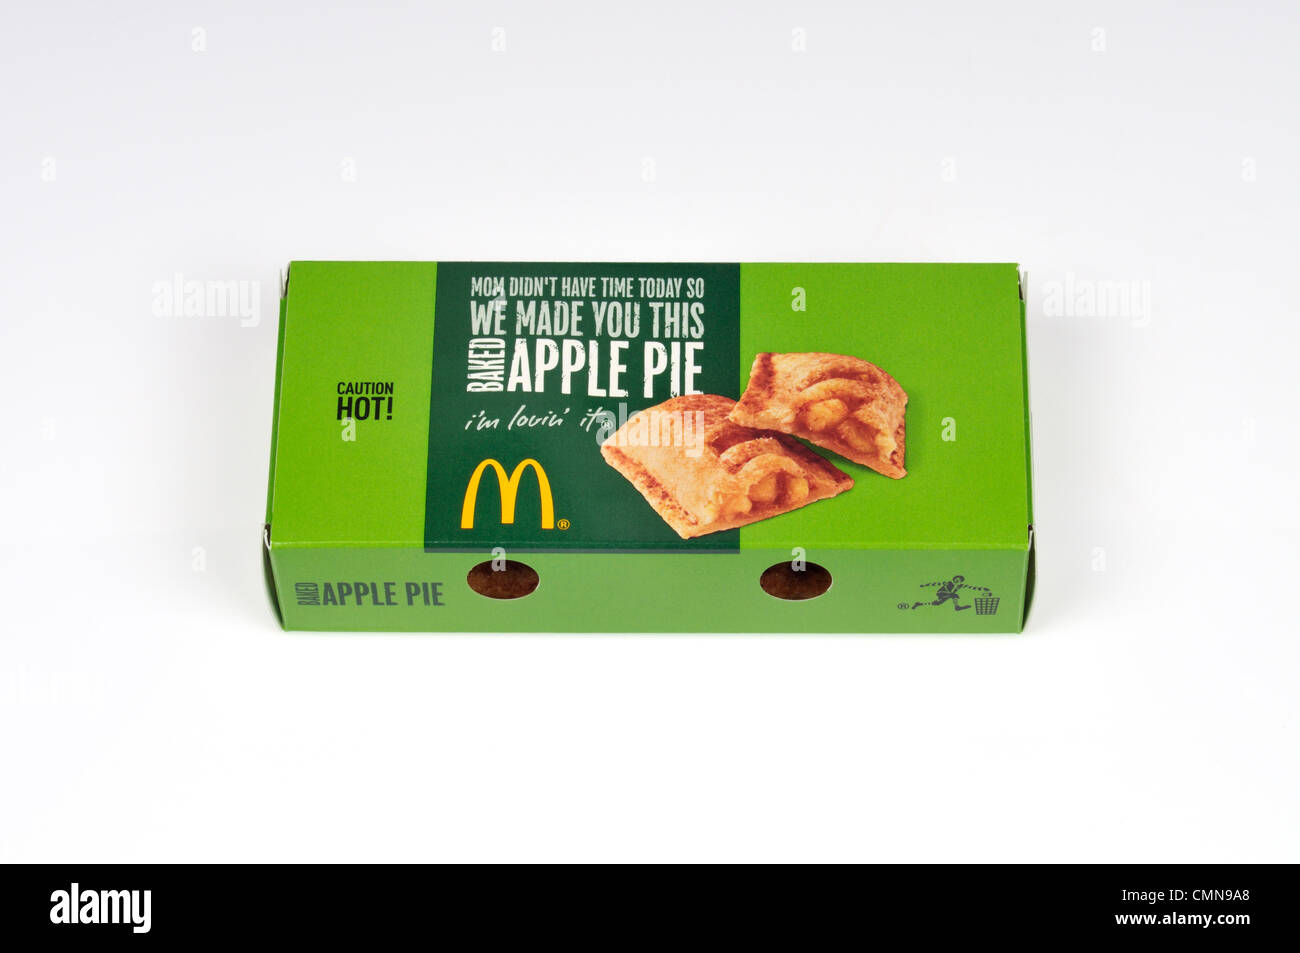 McDonald's hot apple pie in packaging on white background cut out USA. - Stock Image